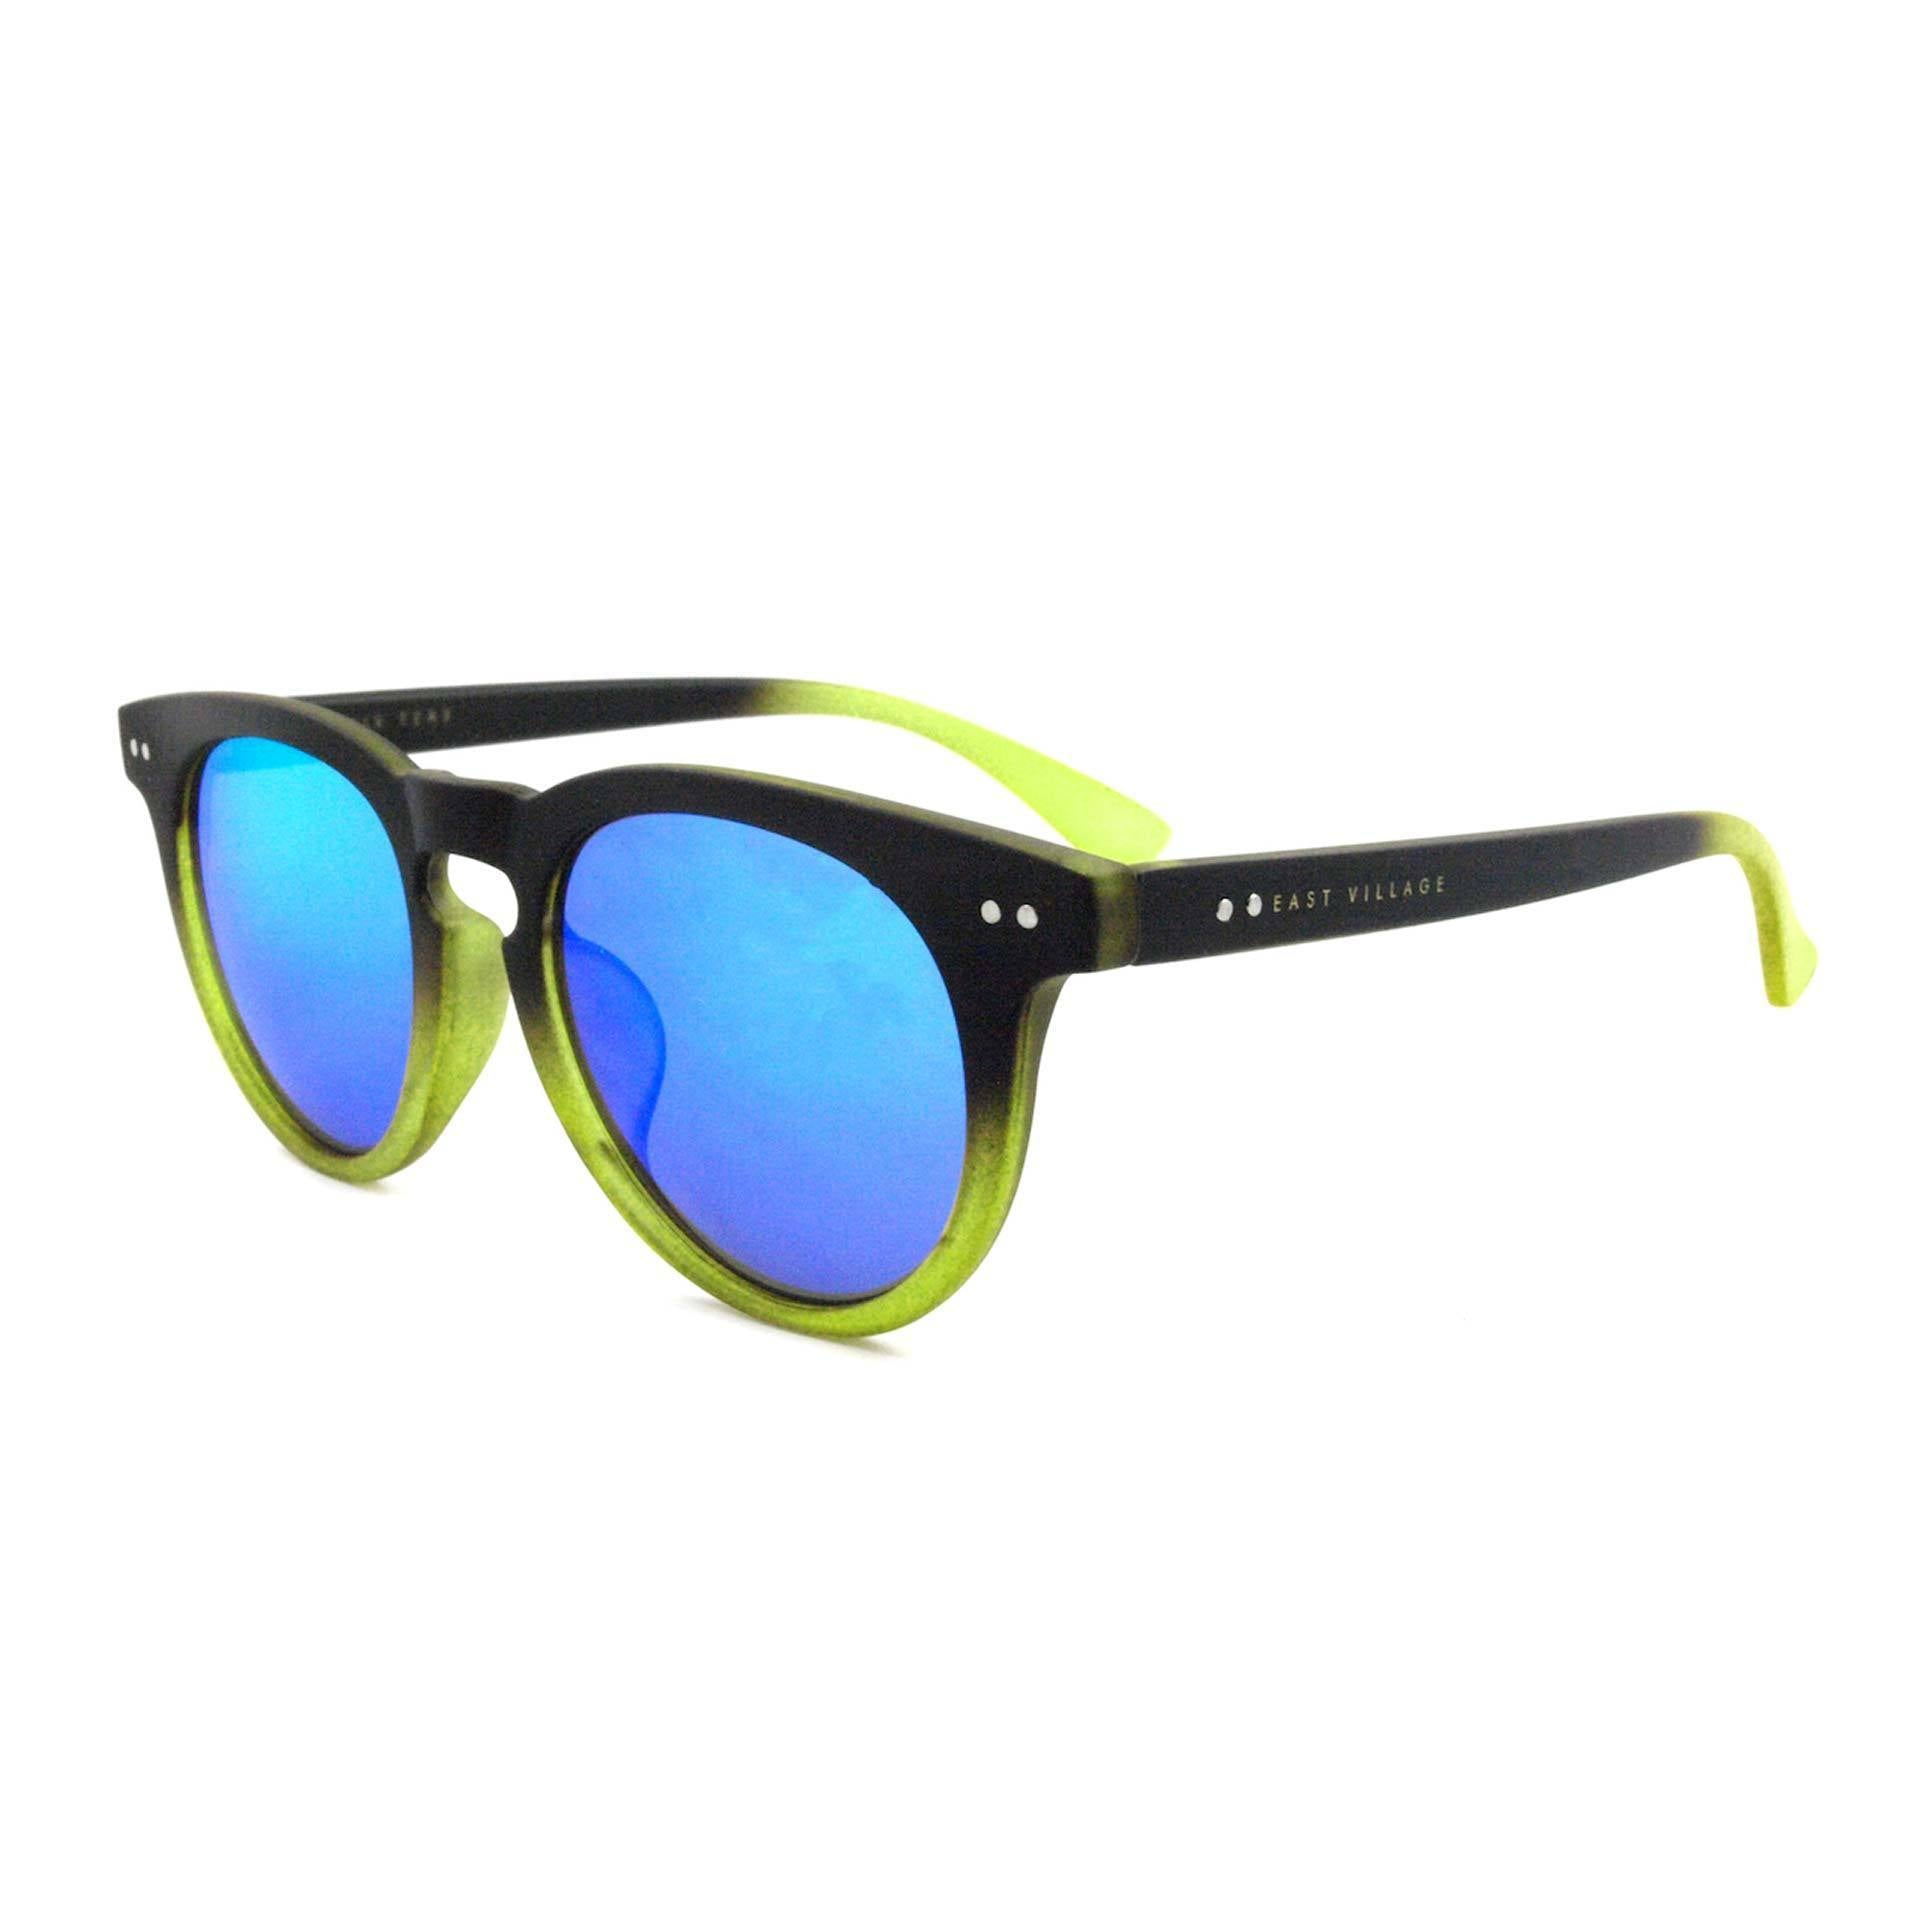 'Moon' Preppy Two-Tone Sunglasses In Black/Green